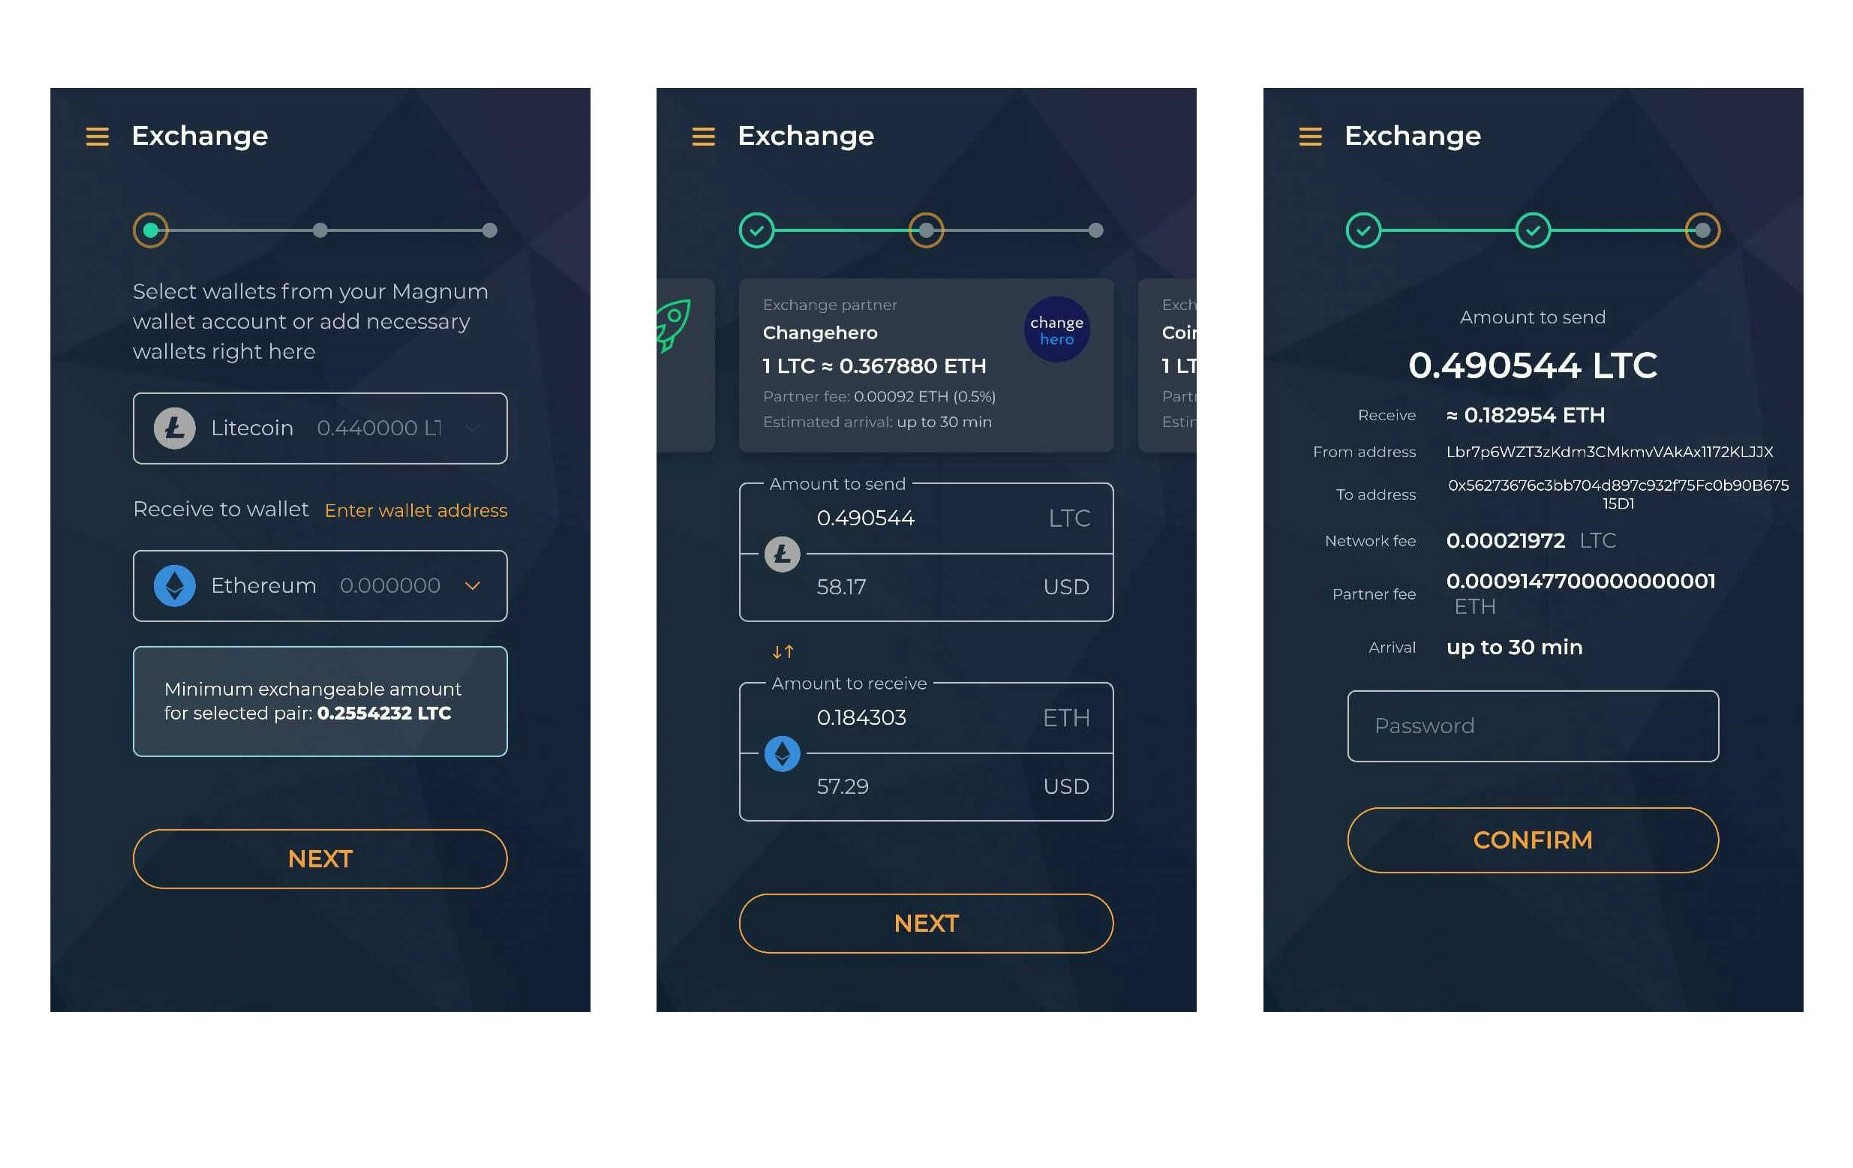 Magnum wallet exchange UI on mobile devices